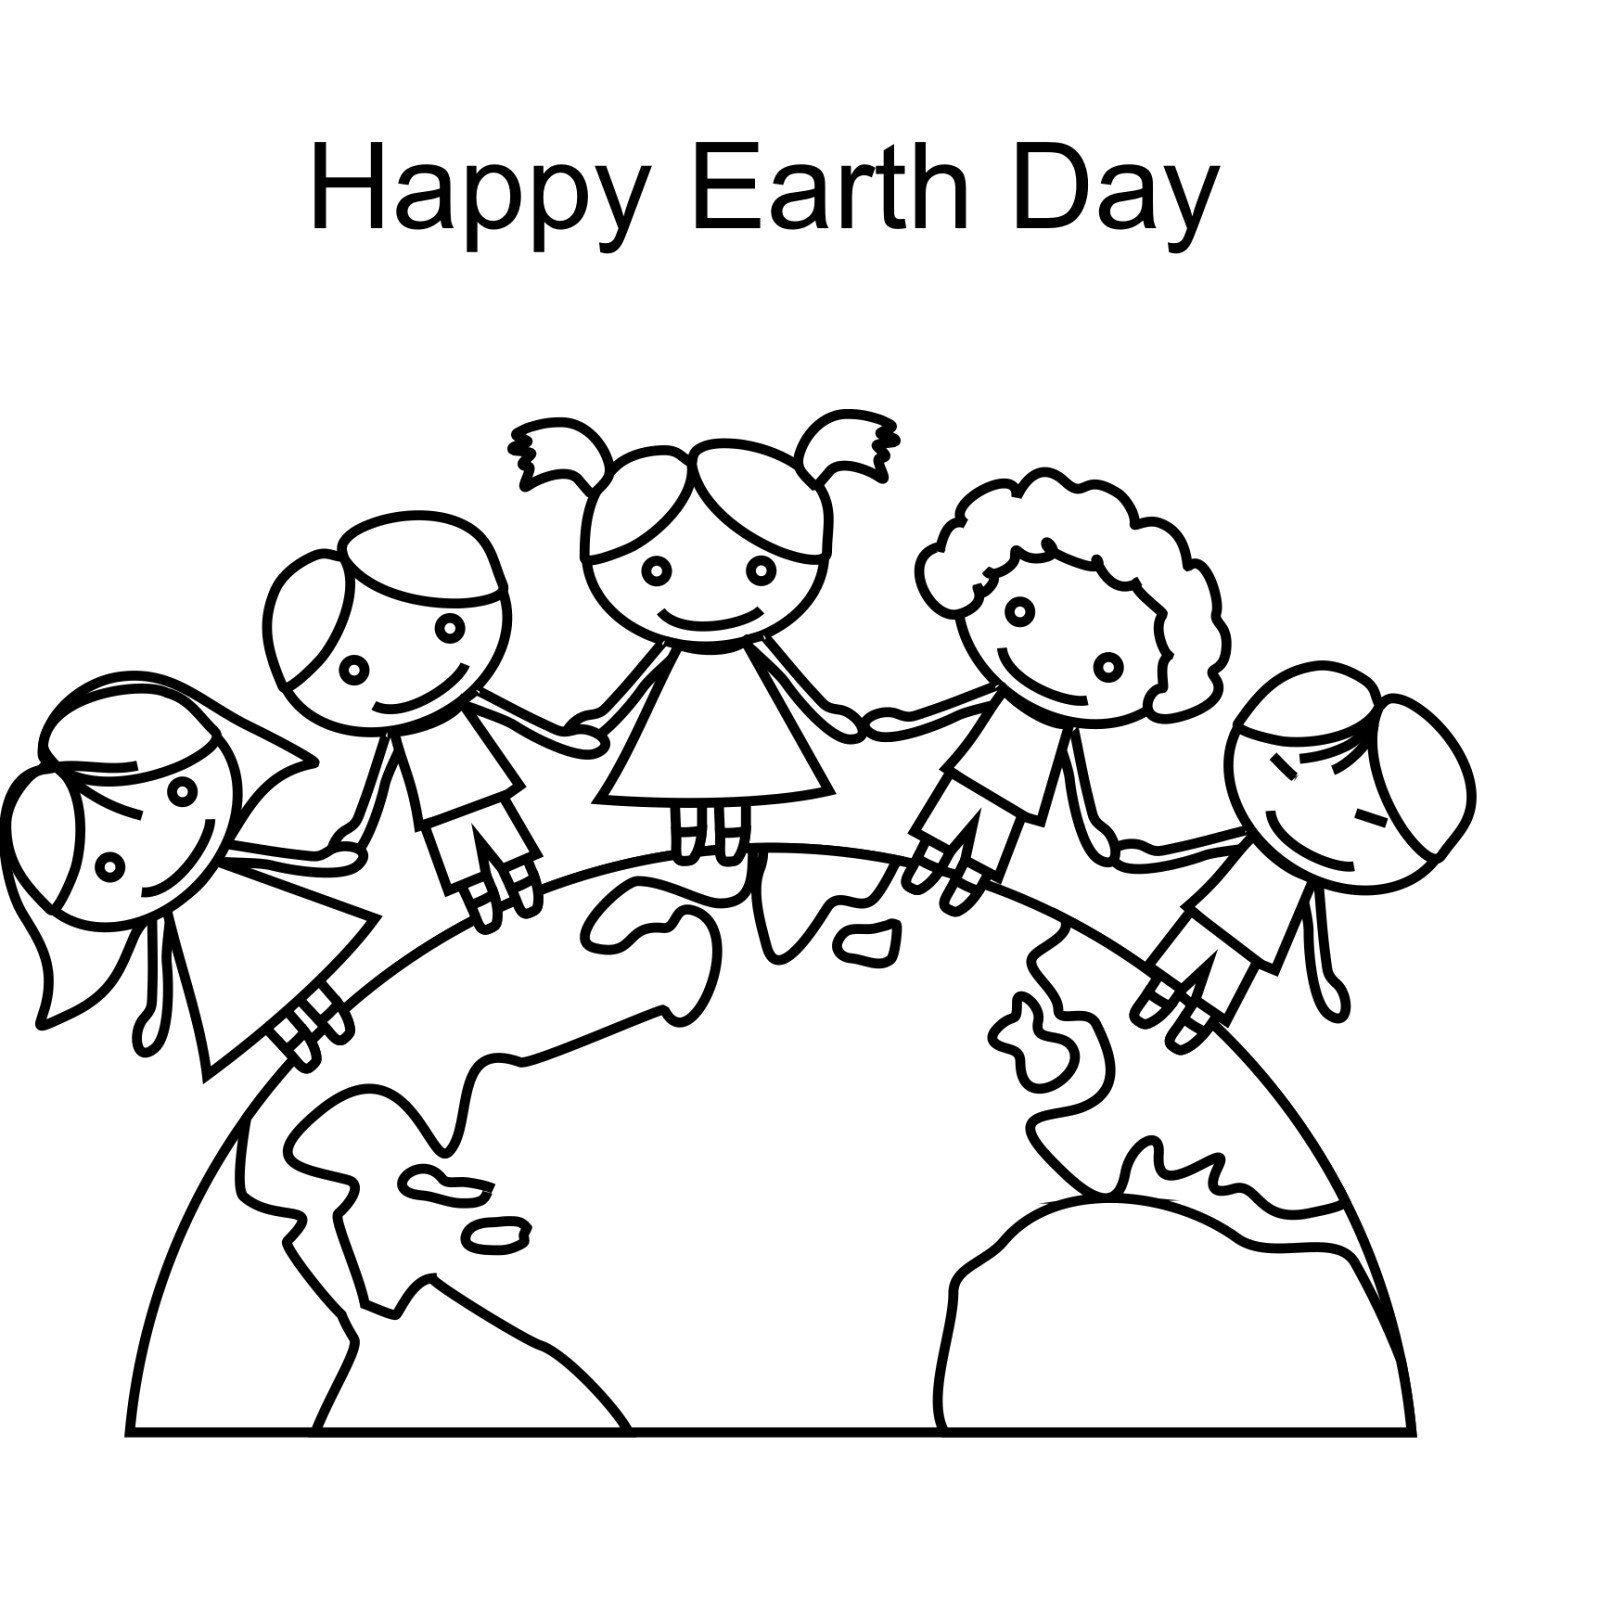 Earth Coloring Pages Coloring Page Earth Day Coloring Sheets Page Adult Monuments